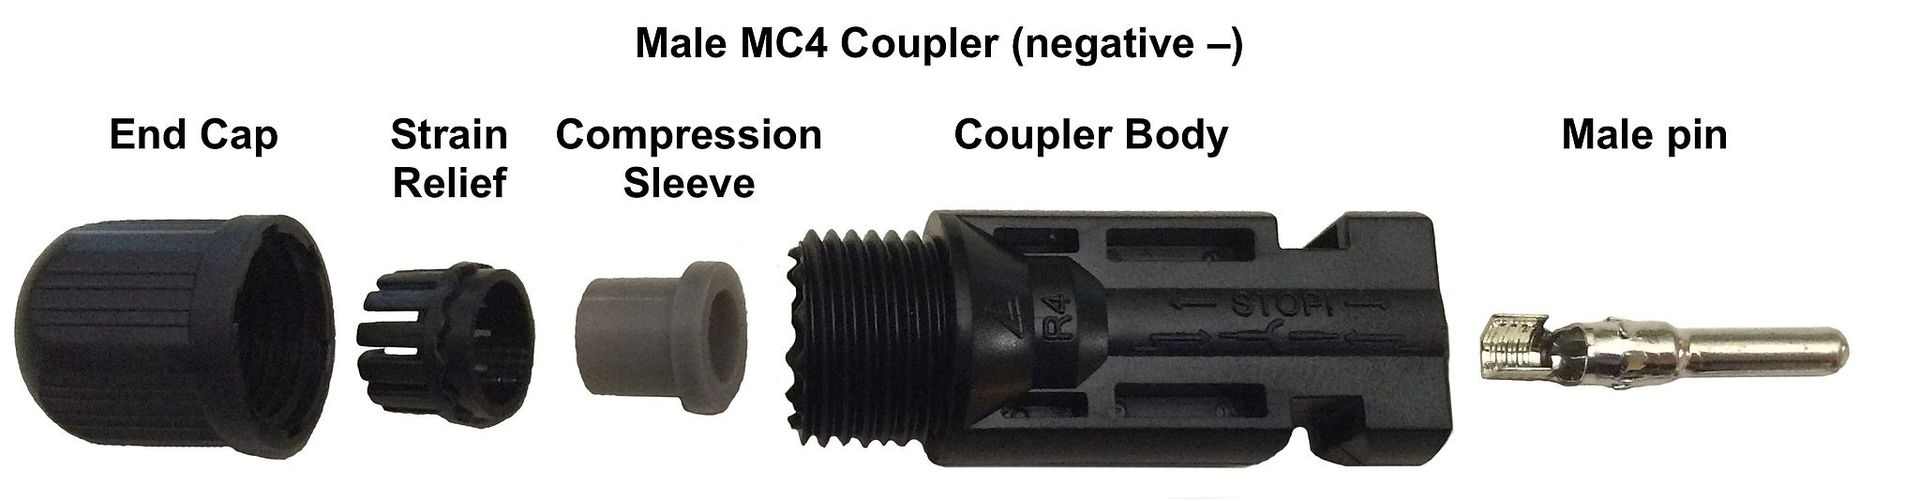 MC4 Male connector